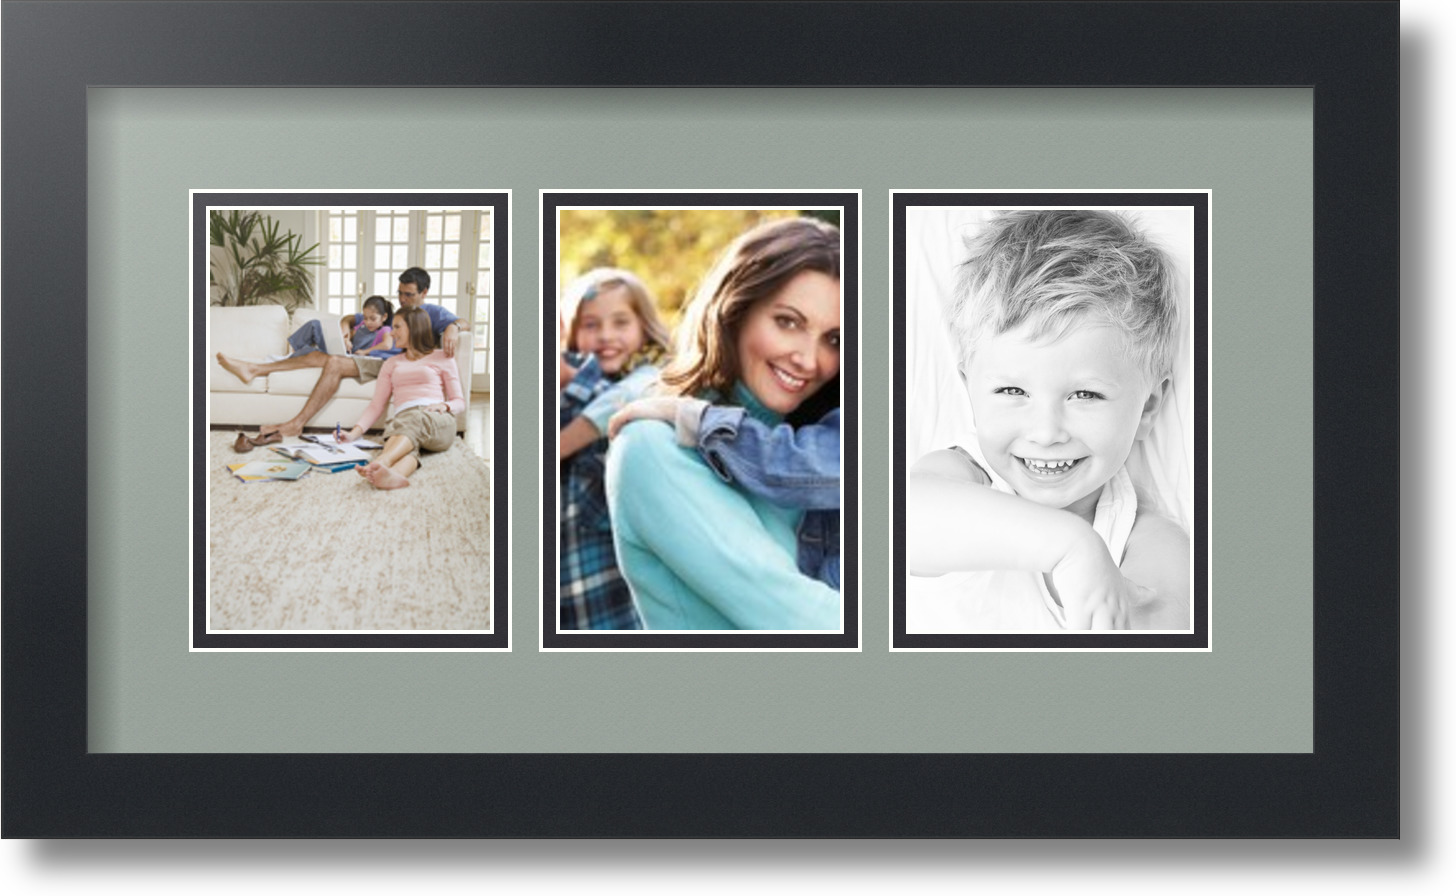 Arttoframes collage mat picture photo frame 3 4x6 openings in arttoframes collage mat picture photo frame 3 4x6 jeuxipadfo Gallery